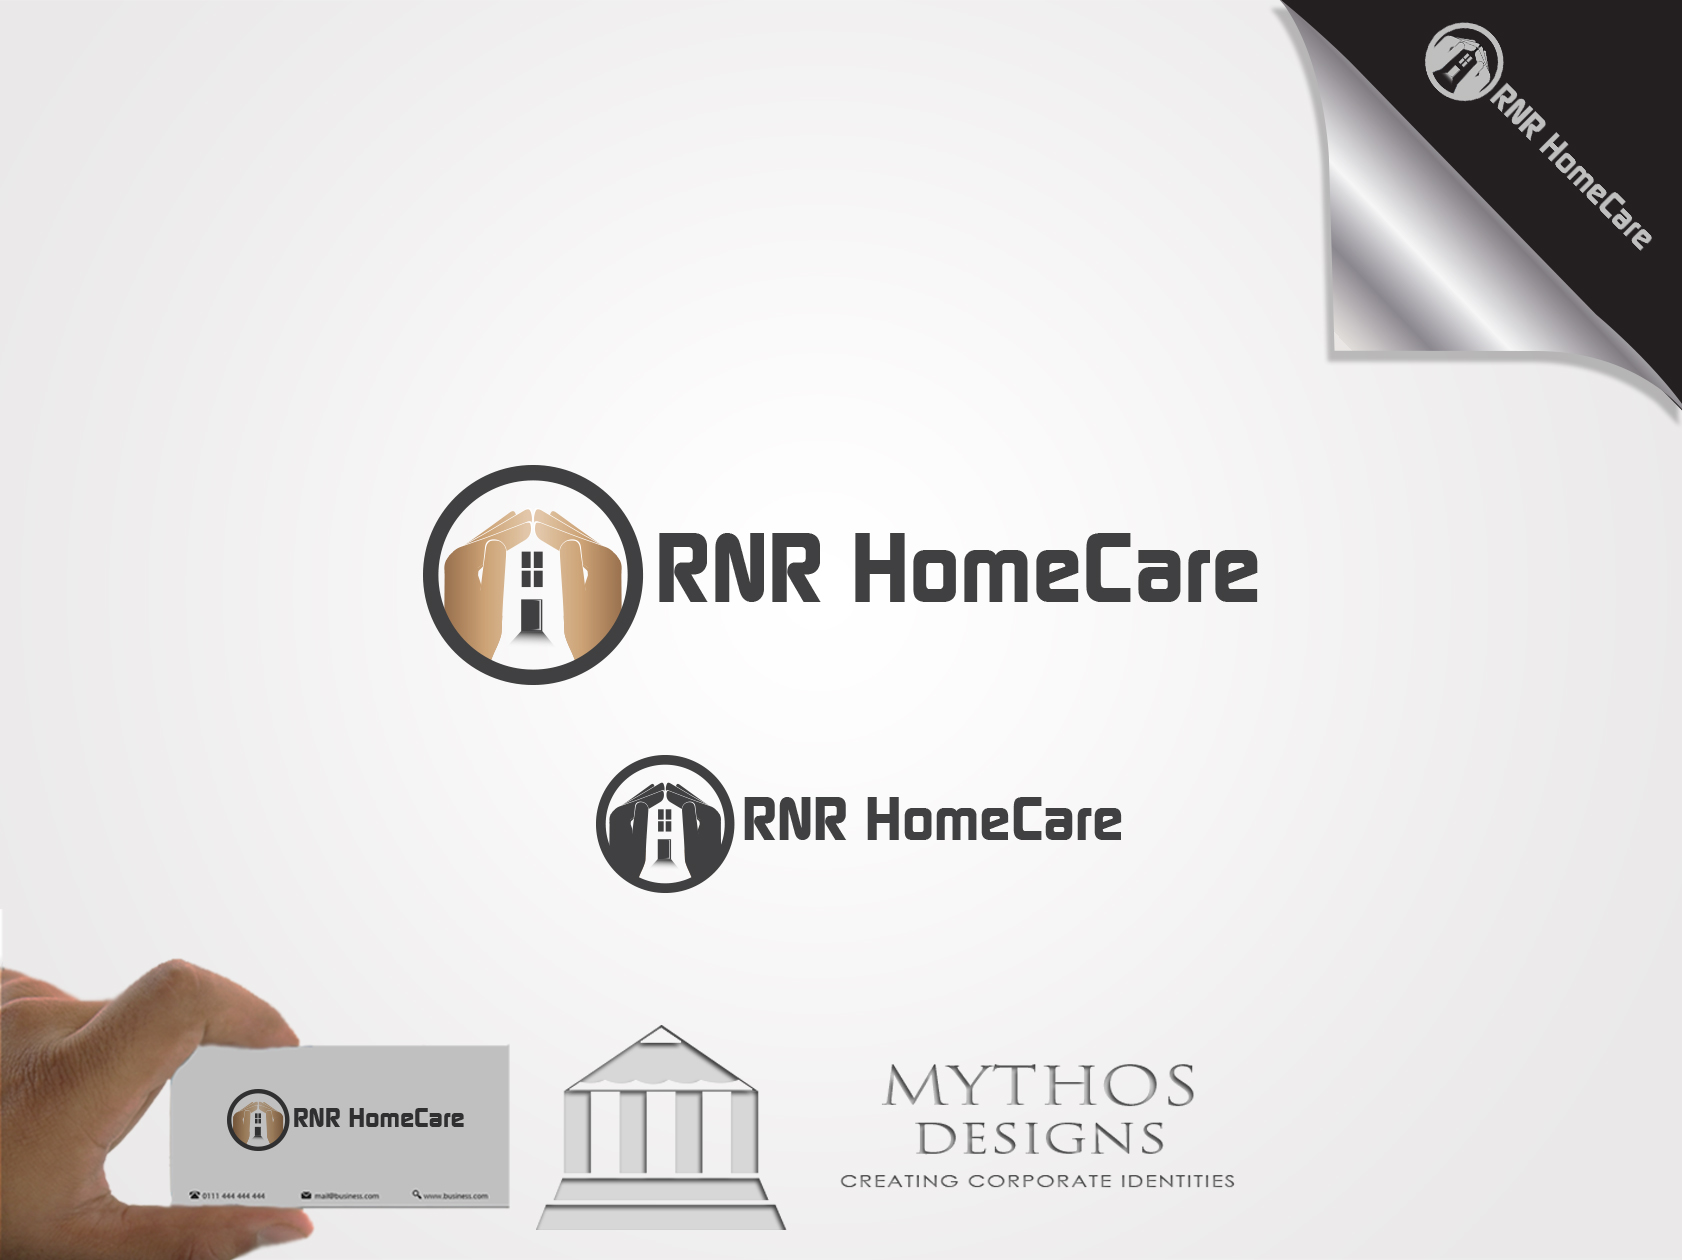 Logo Design by Mythos Designs - Entry No. 83 in the Logo Design Contest Imaginative Logo Design for RNR HomeCare.